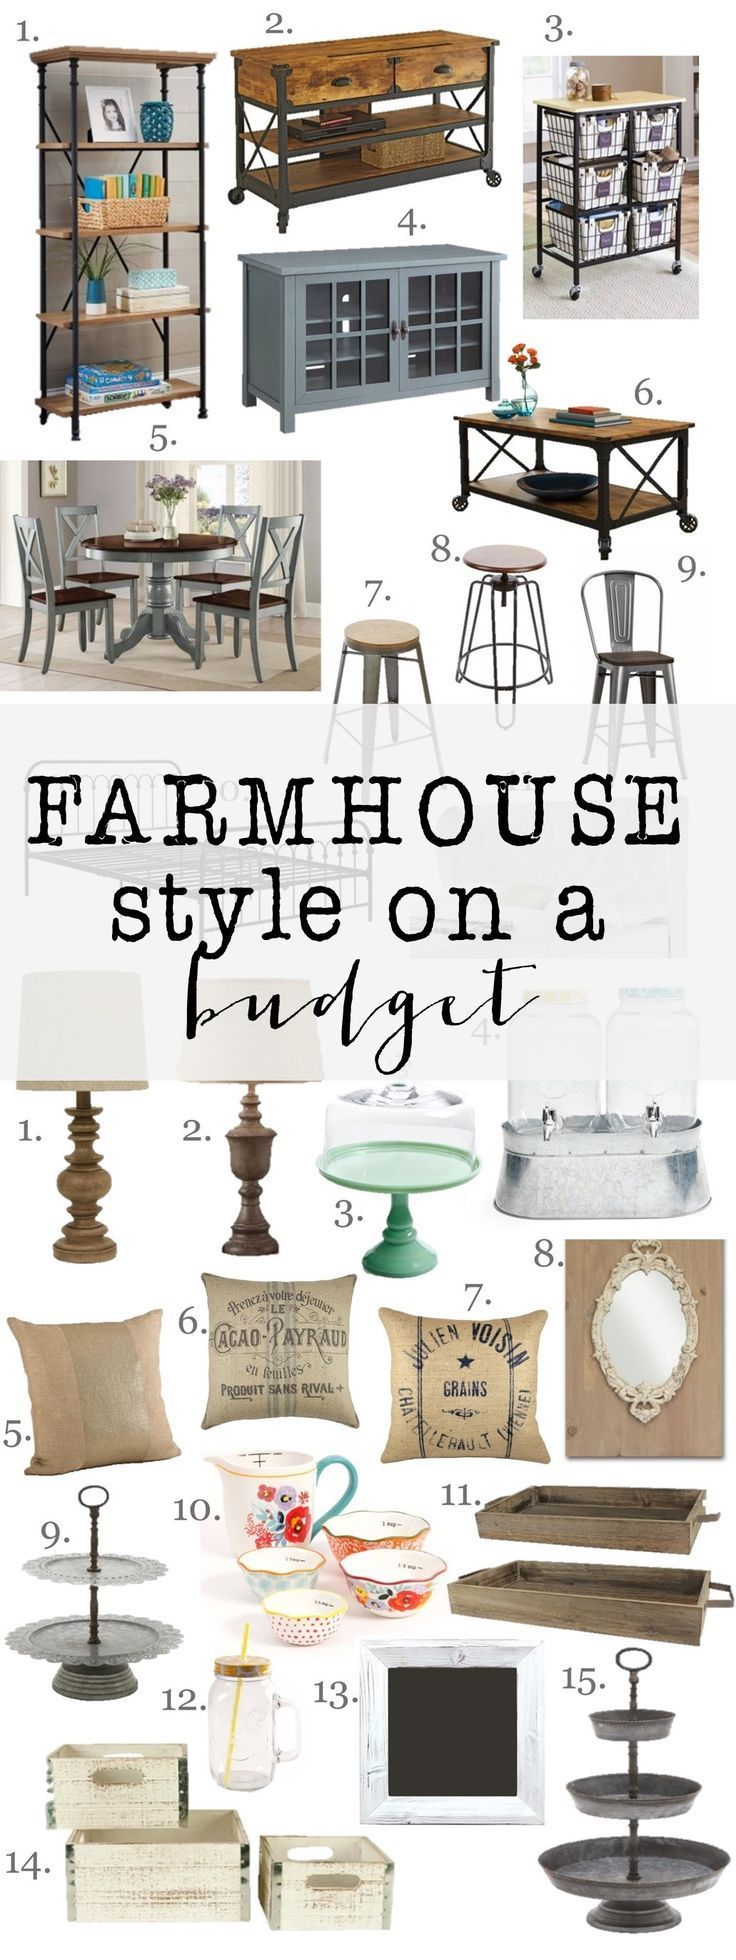 European Inspired Design - Our Work Featured in At Home. The Best of home decor ideas in 2017 -   24 farmhouse style on a budget